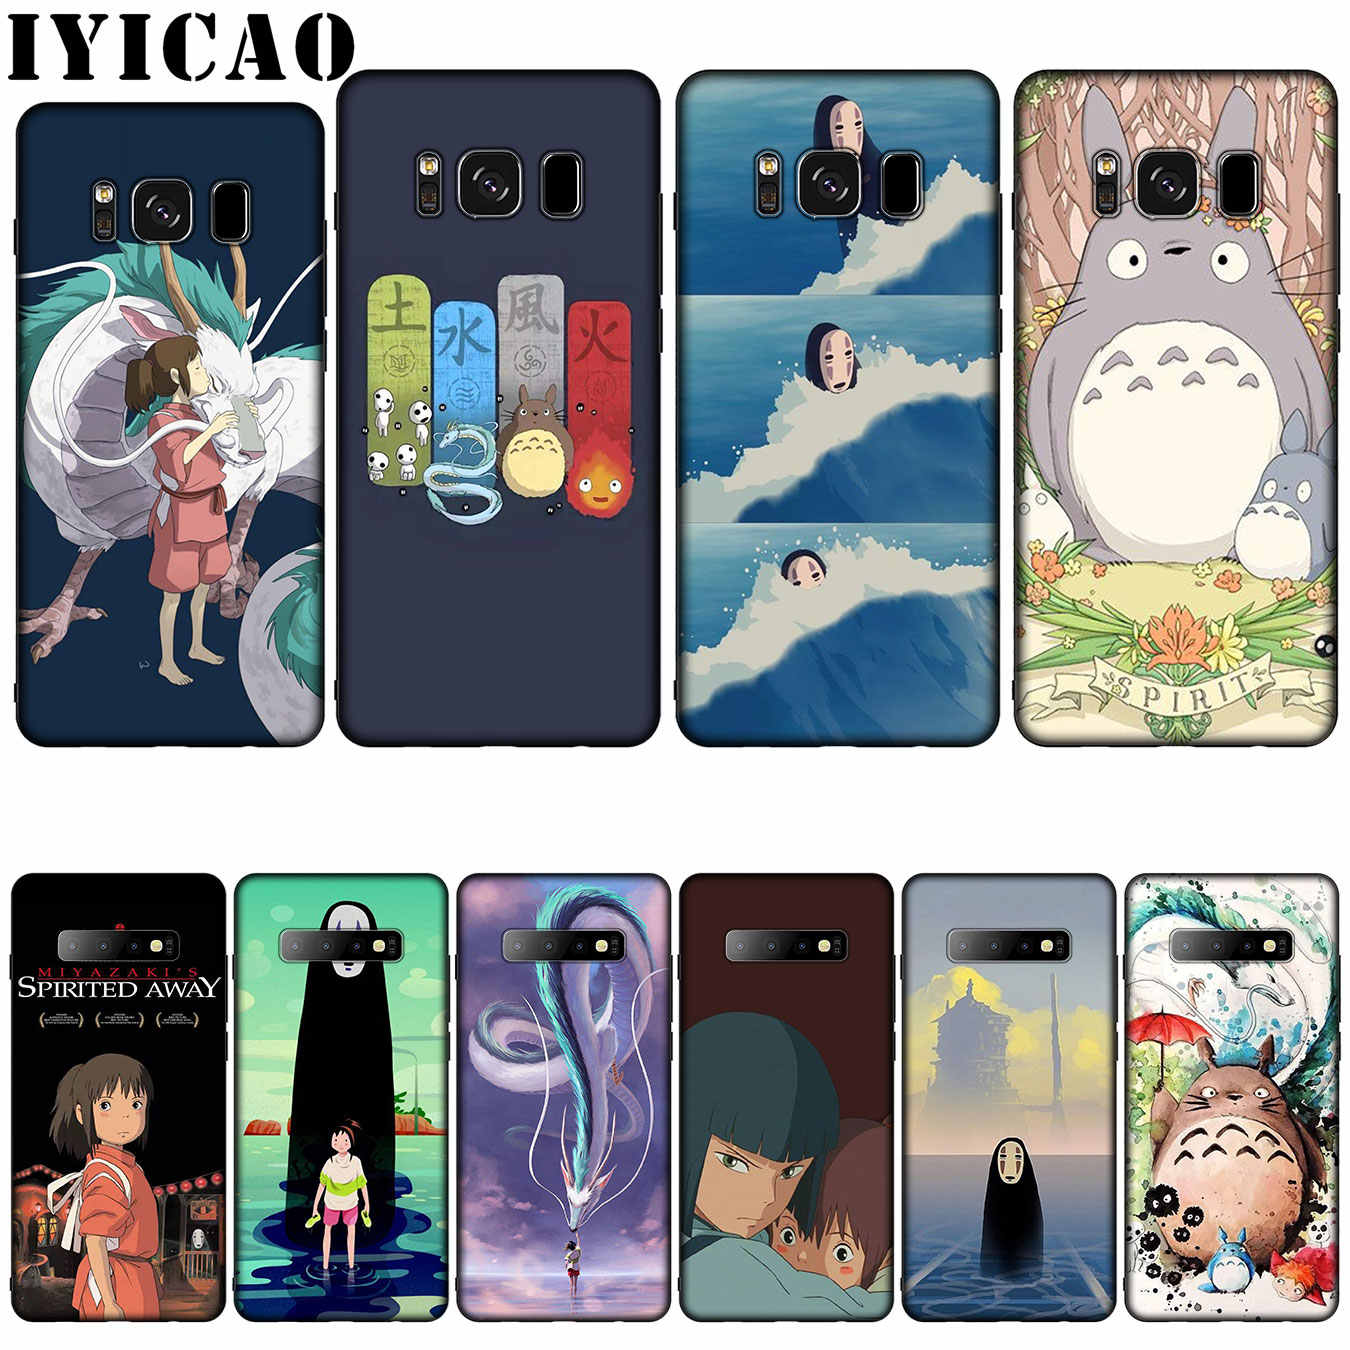 IYICAO Ghibli Spirited Away Totoro Silicone Soft Phone Case for Samsung Galaxy S10 S9 S8 Plus S6 S7 Edge S10e E Cover